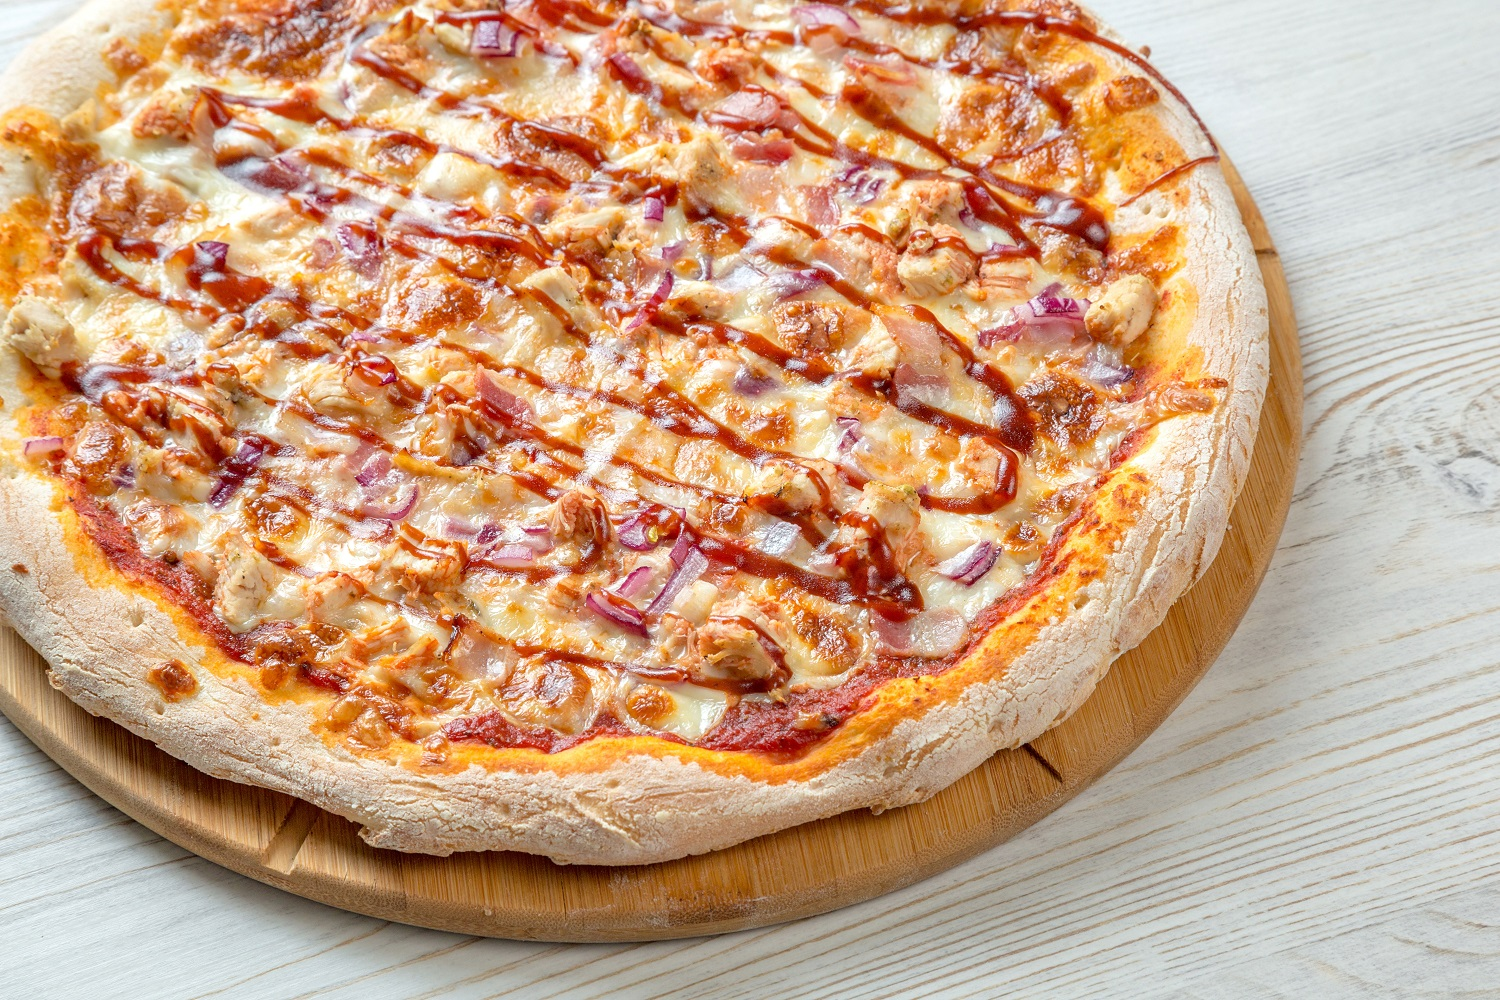 BBQ Sauce and chicken pizza